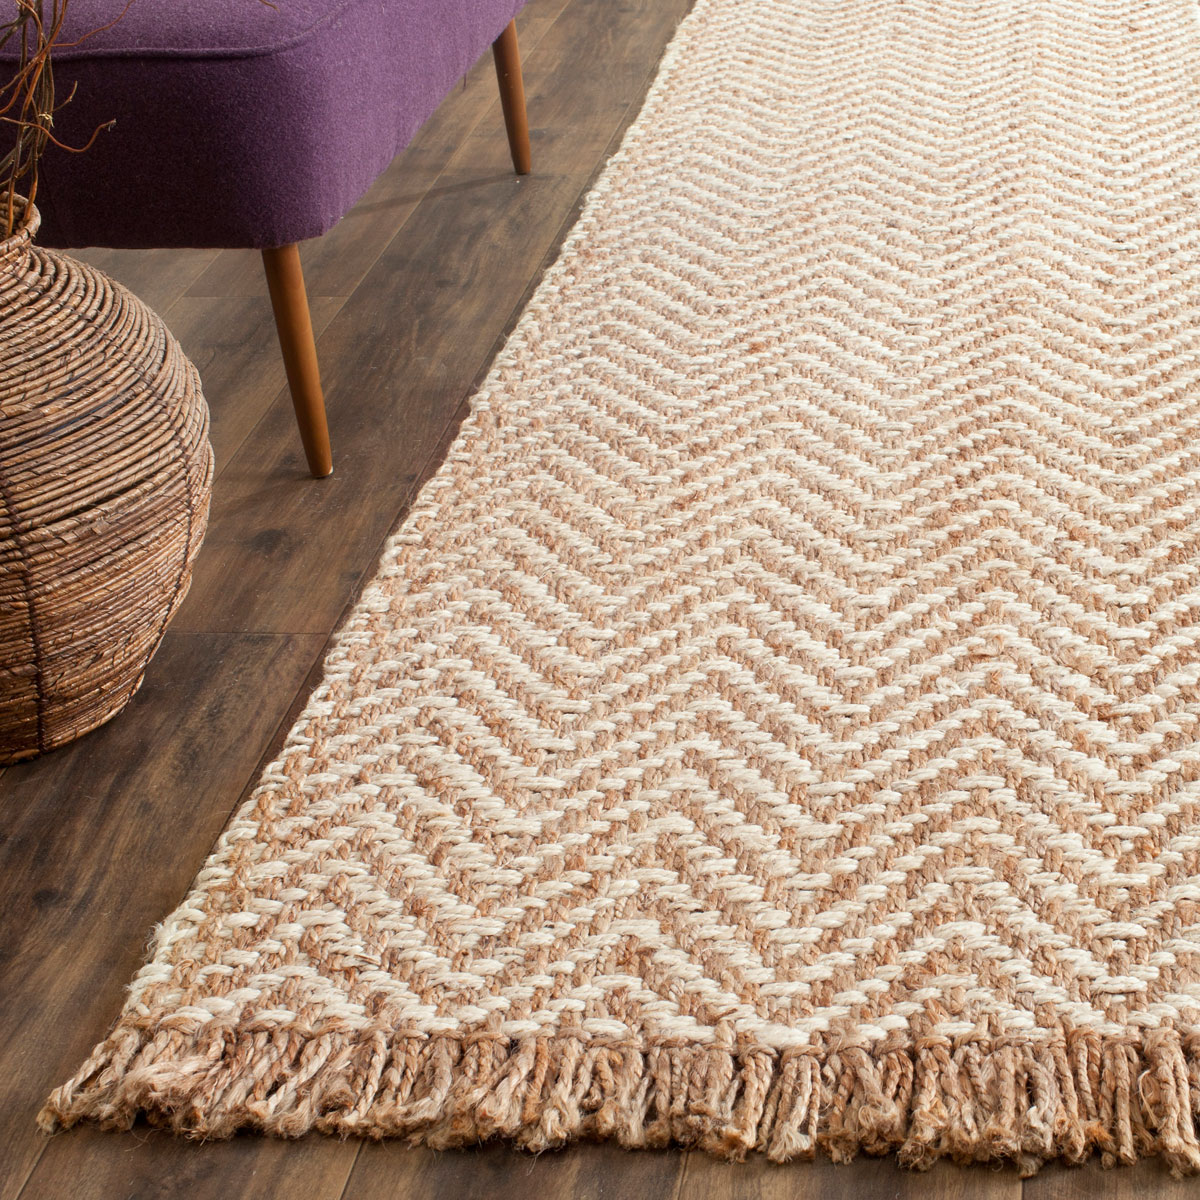 Rug Nf458a Natural Fiber Area Rugs By Safavieh